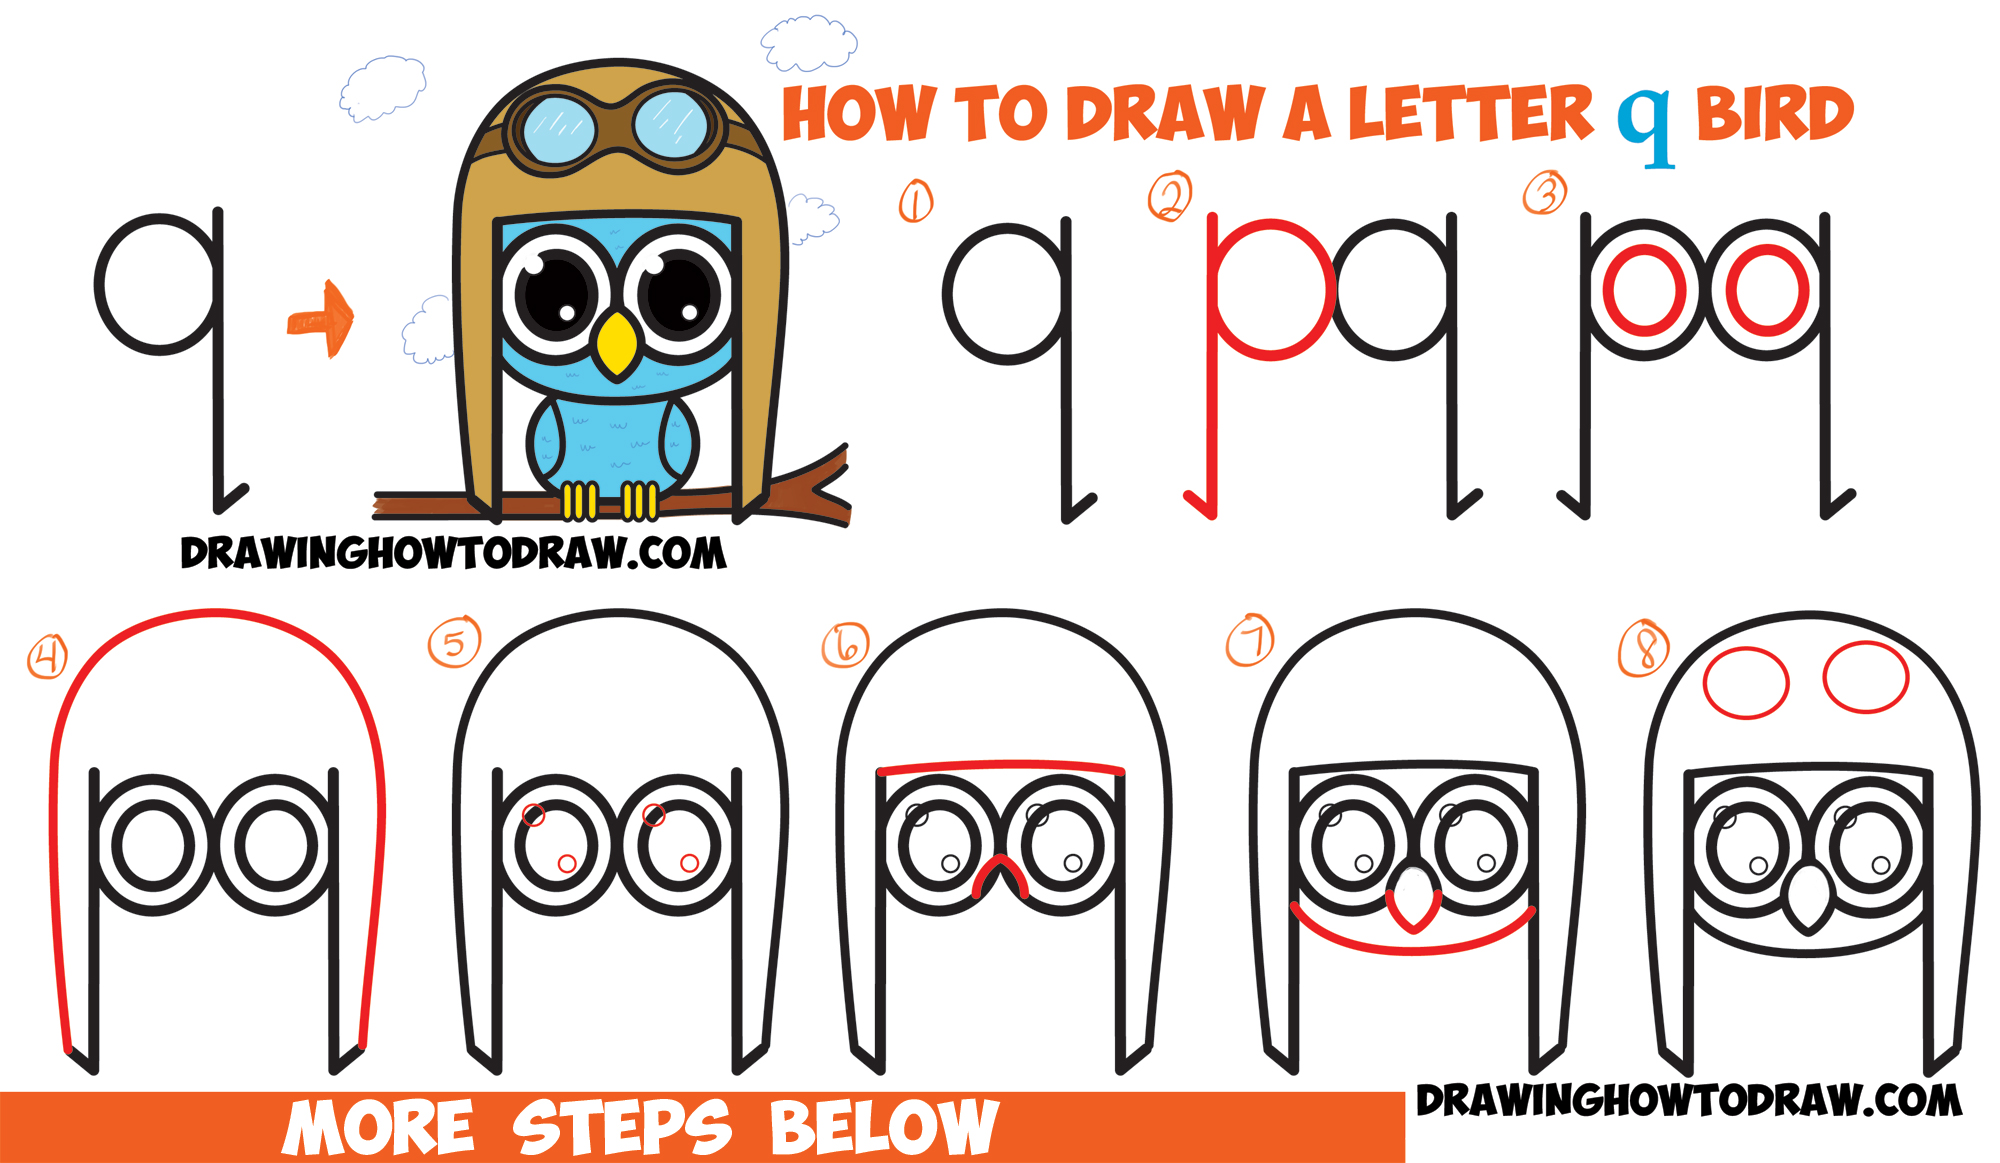 How to Draw Cartoon Birds / Owls from Lowercase Letter q - Easy Tutorial for Kids